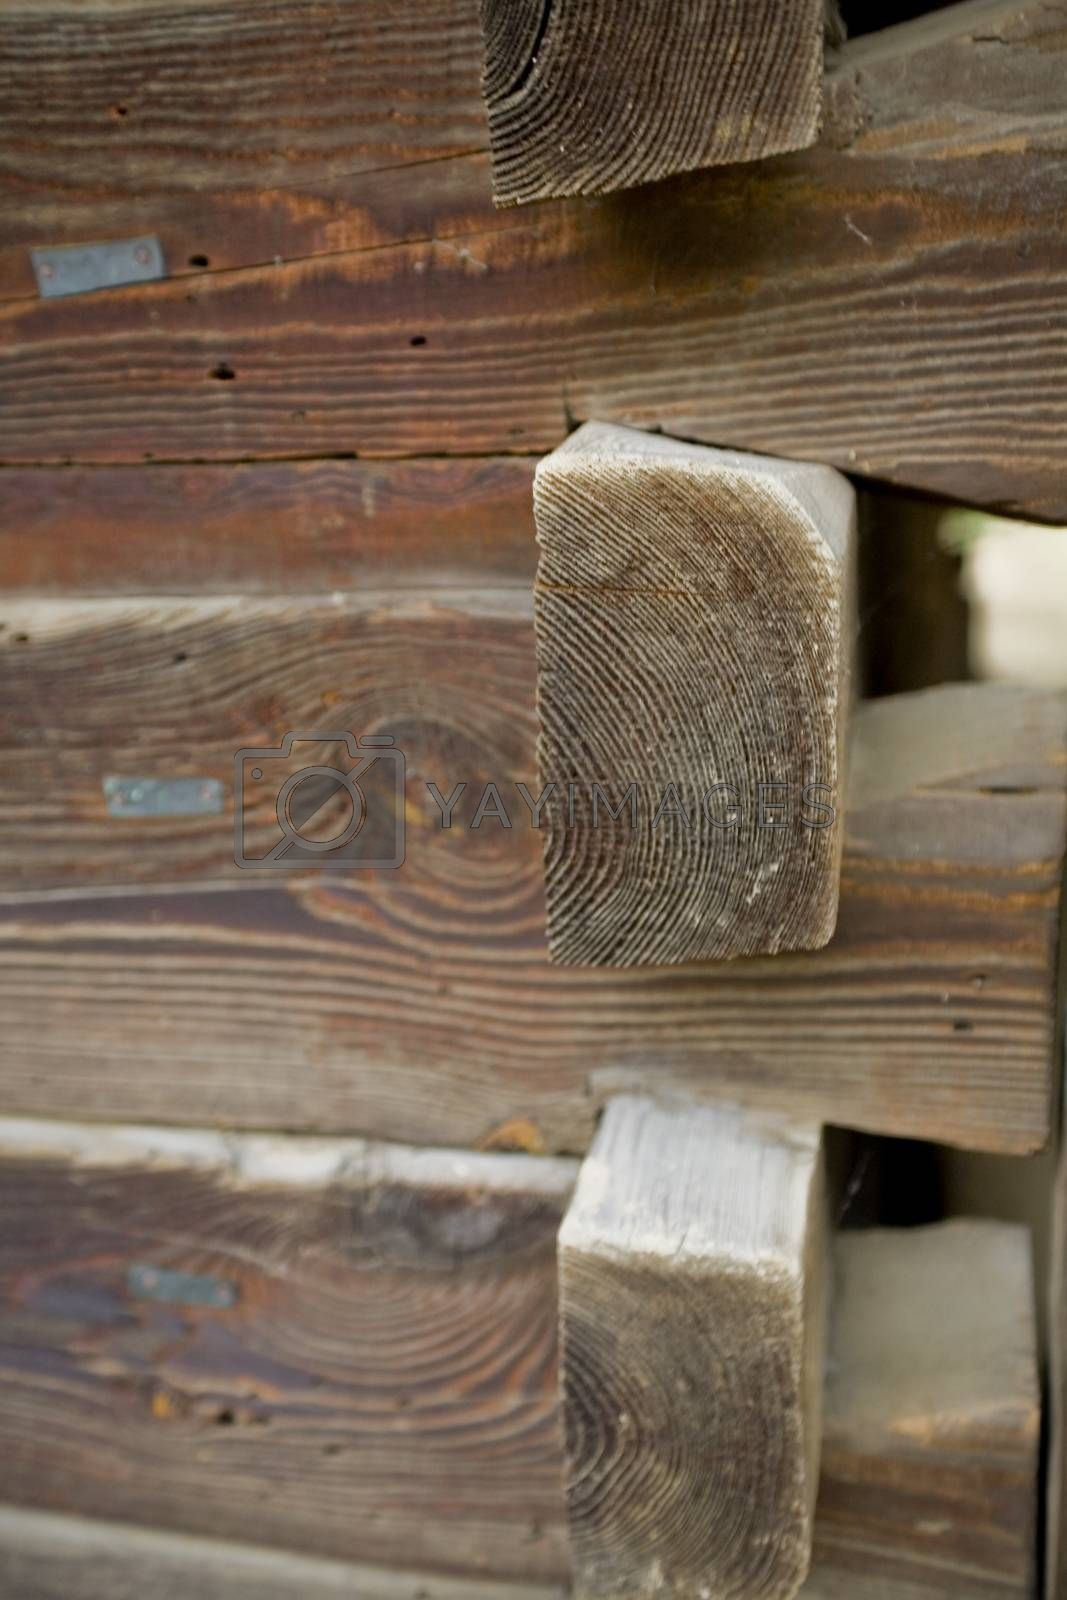 Royalty free image of urface-mounted wooden structure of a hut without nails in Polish by Lukrecja